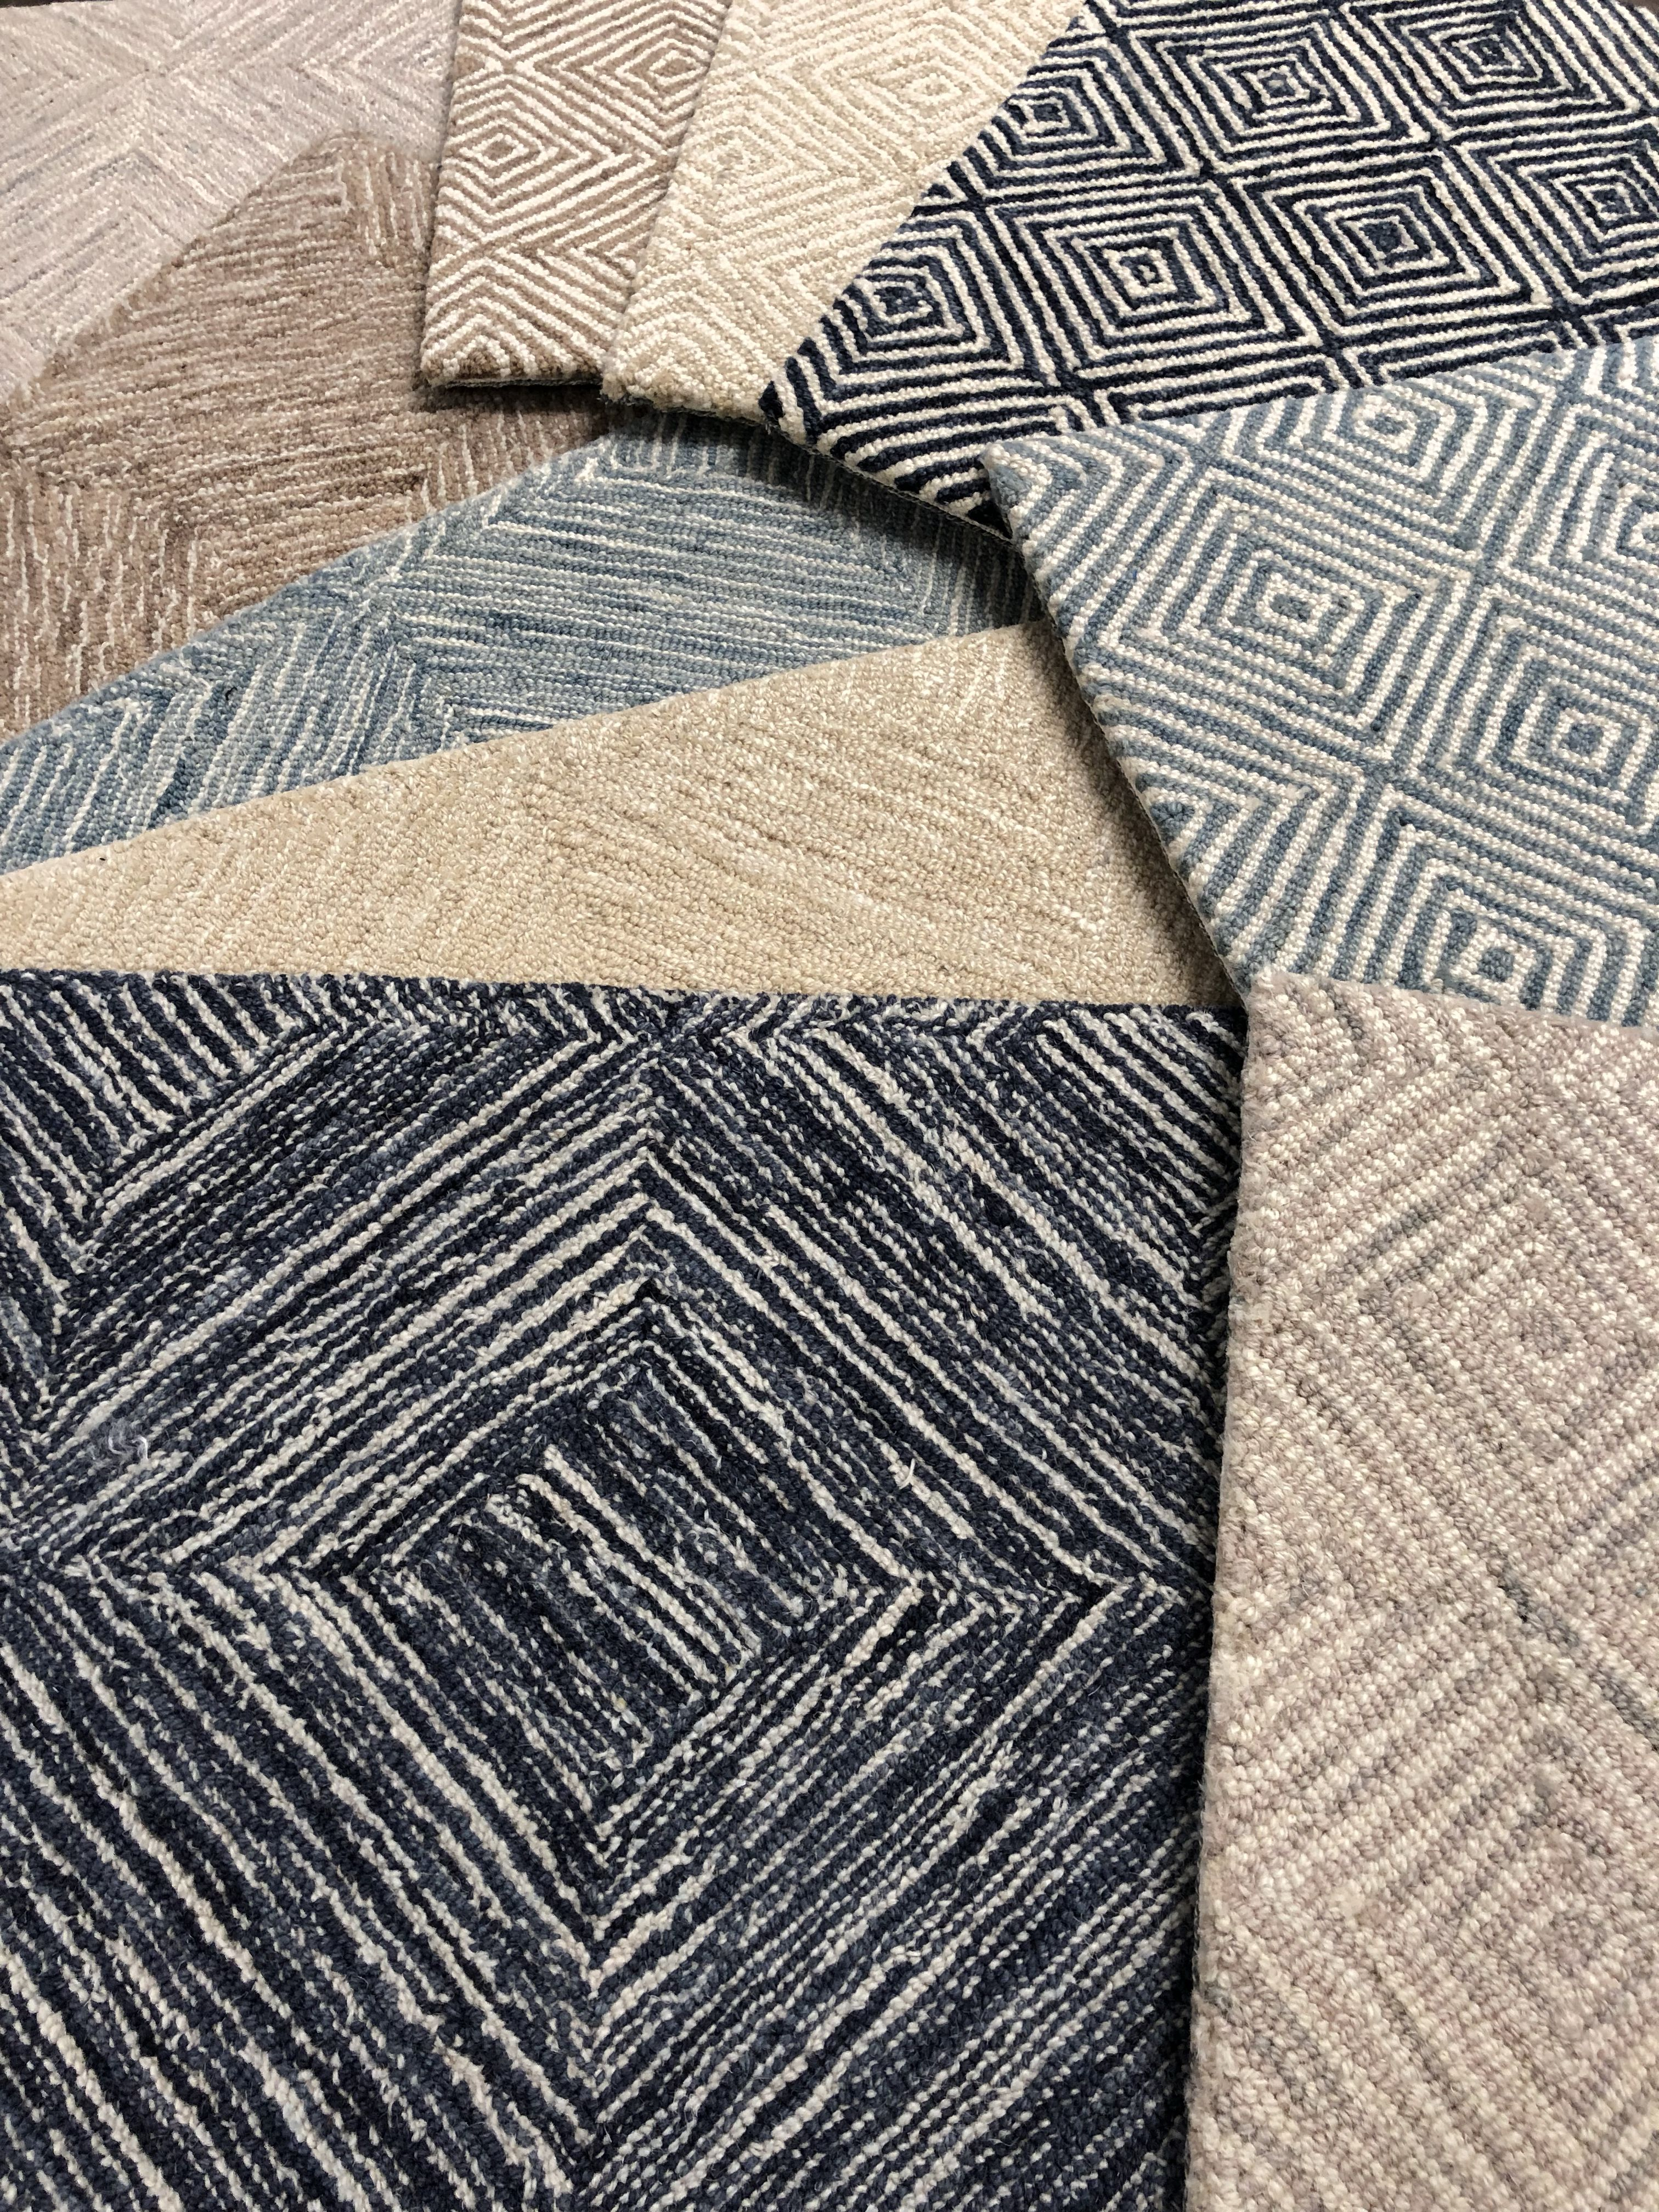 This Collection Of Handcrafted Carpet Is Offered As Made To Order Rugs Up To 15 Foot Wide Contact Us With Your Size Carpet Colors Wall Carpet Patterned Carpet